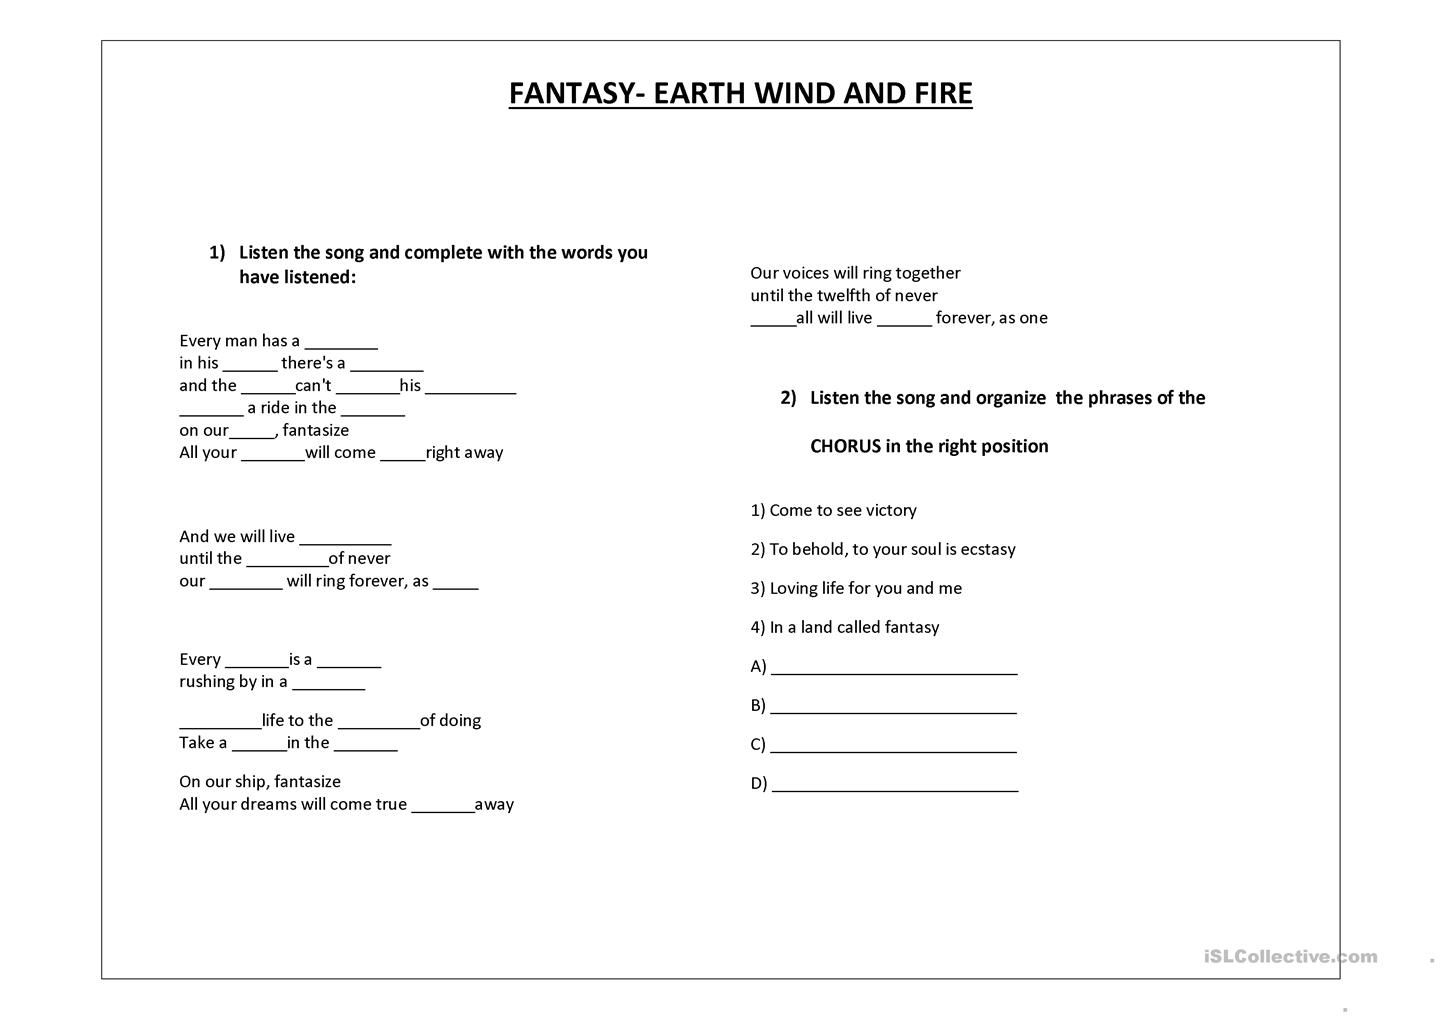 Listening Exercise Fantasy Earth Wind And Fire